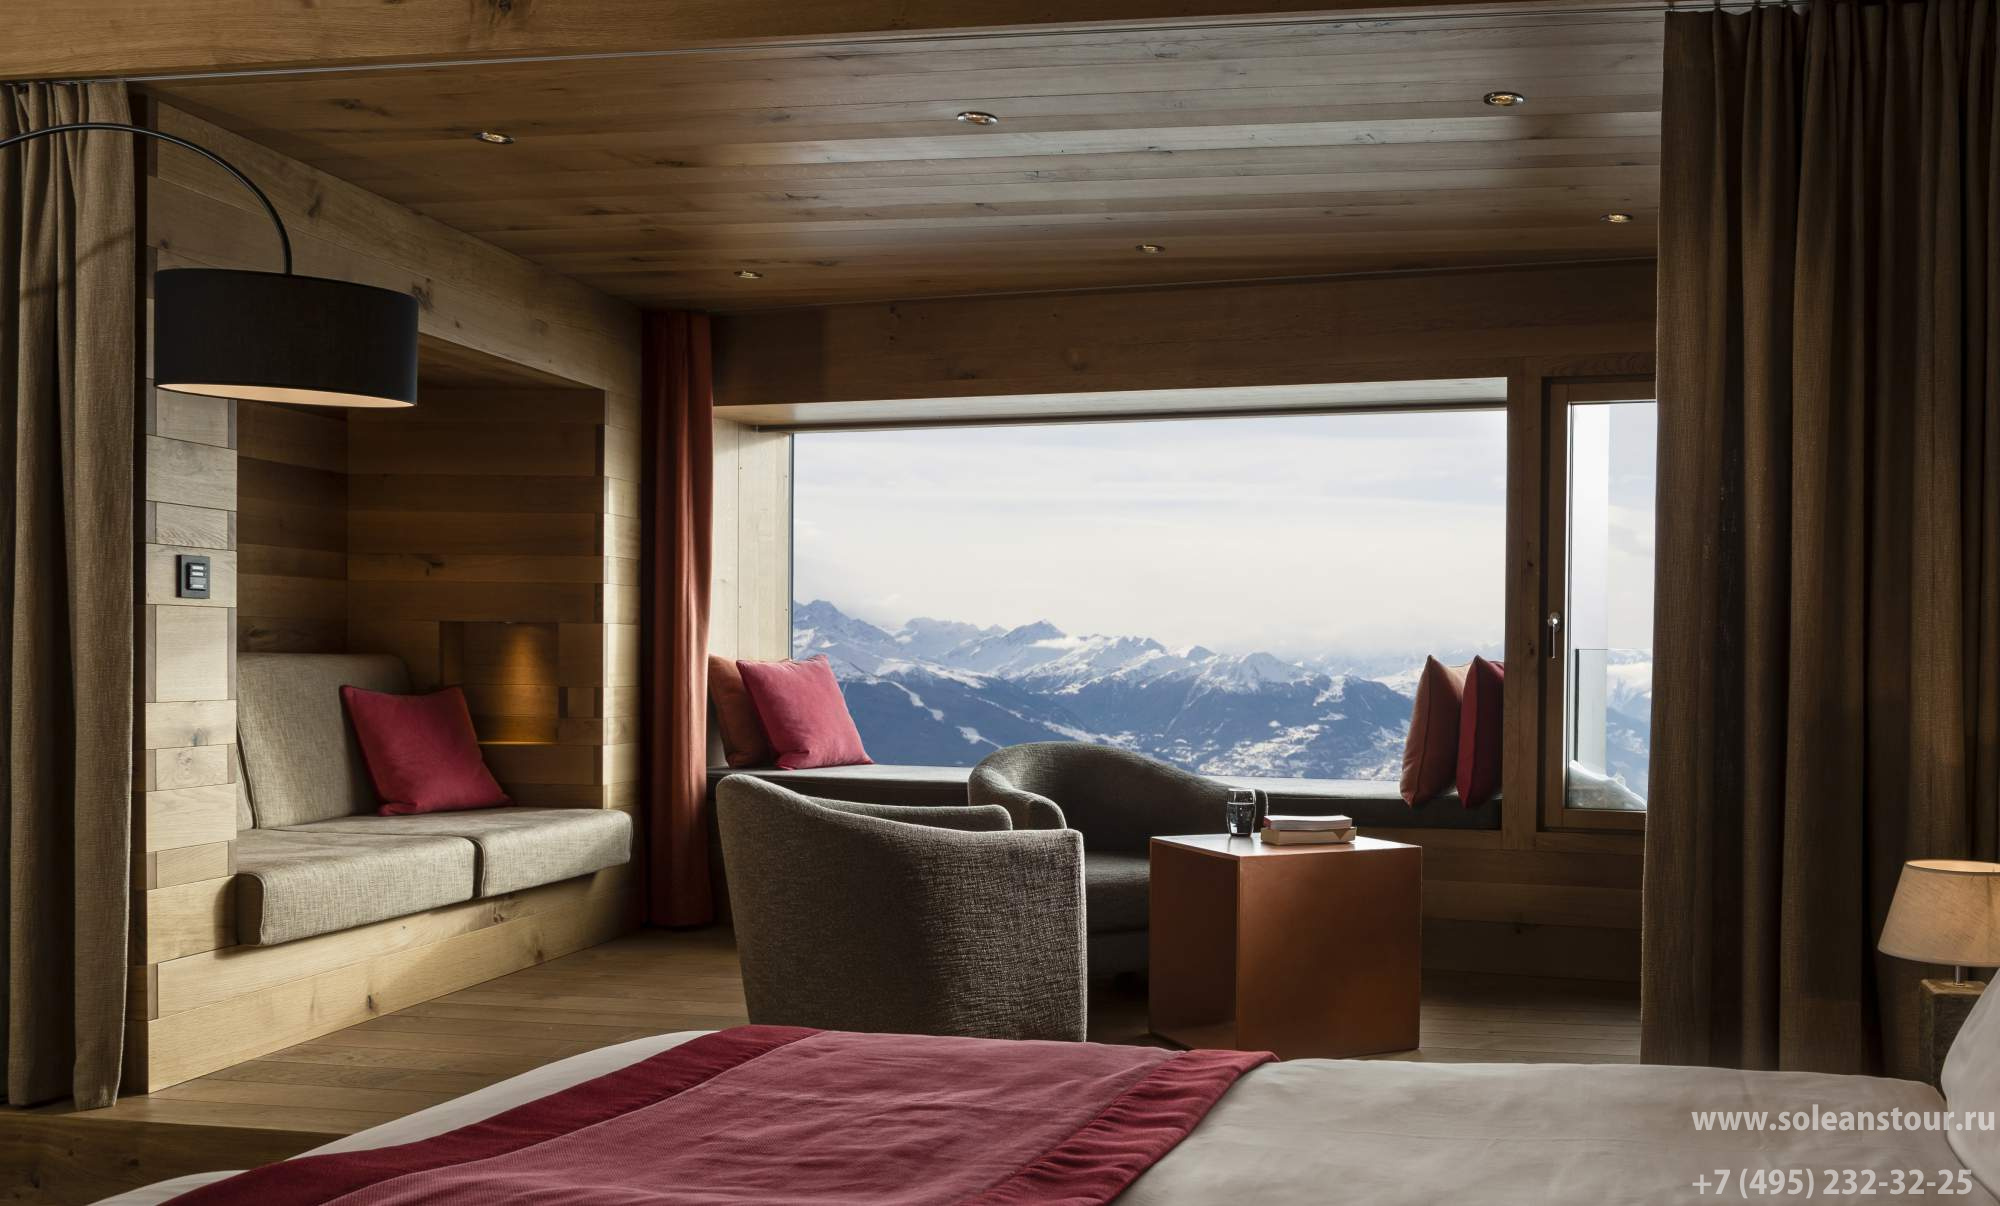 HOTEL CHETZERON 4* (Design Hotels)  - NEW!